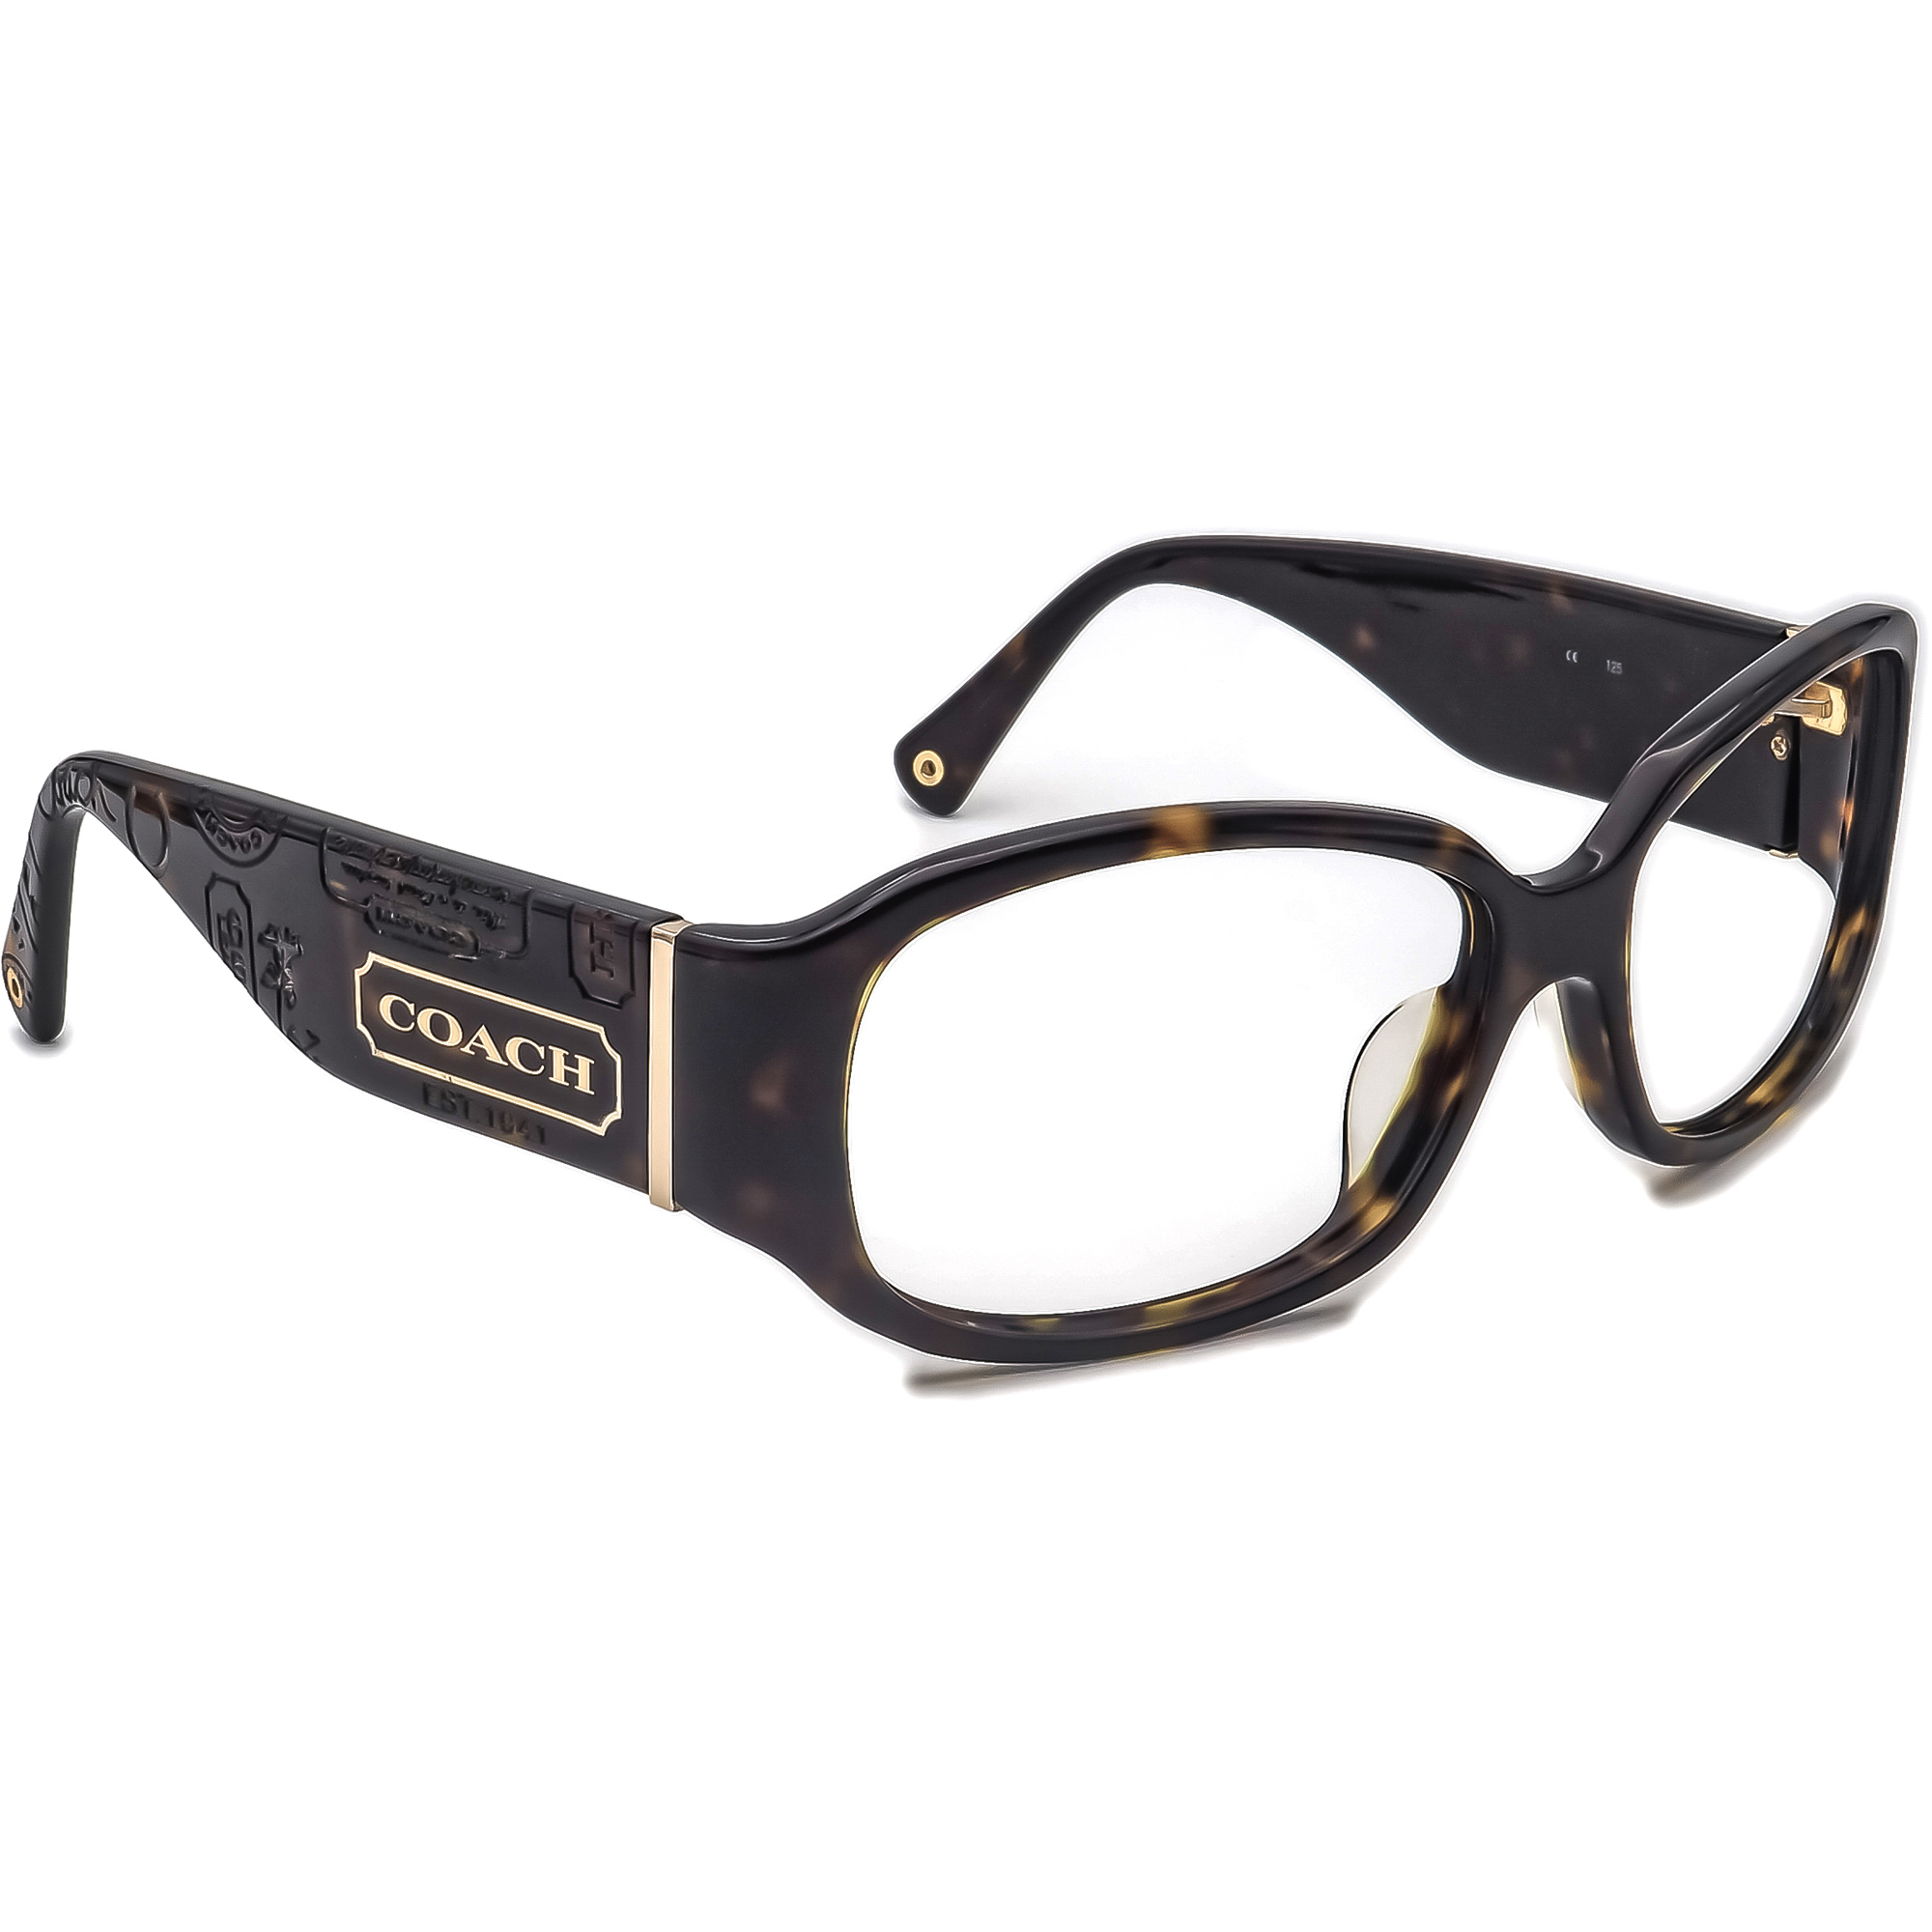 Coach Rowan (S827) Sunglasses Frame Only